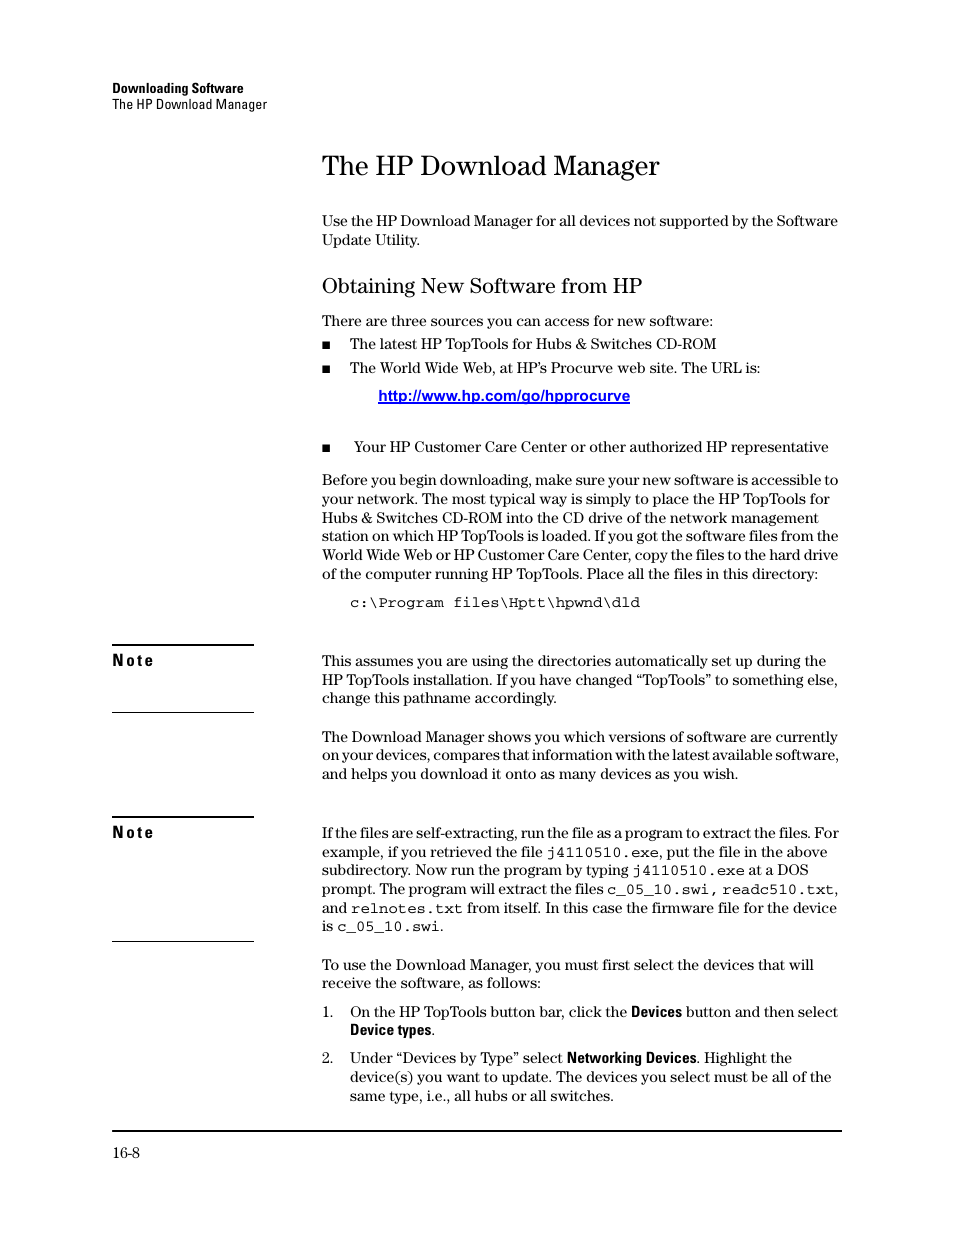 The hp download manager, Obtaining new software from hp, Obtaining ...